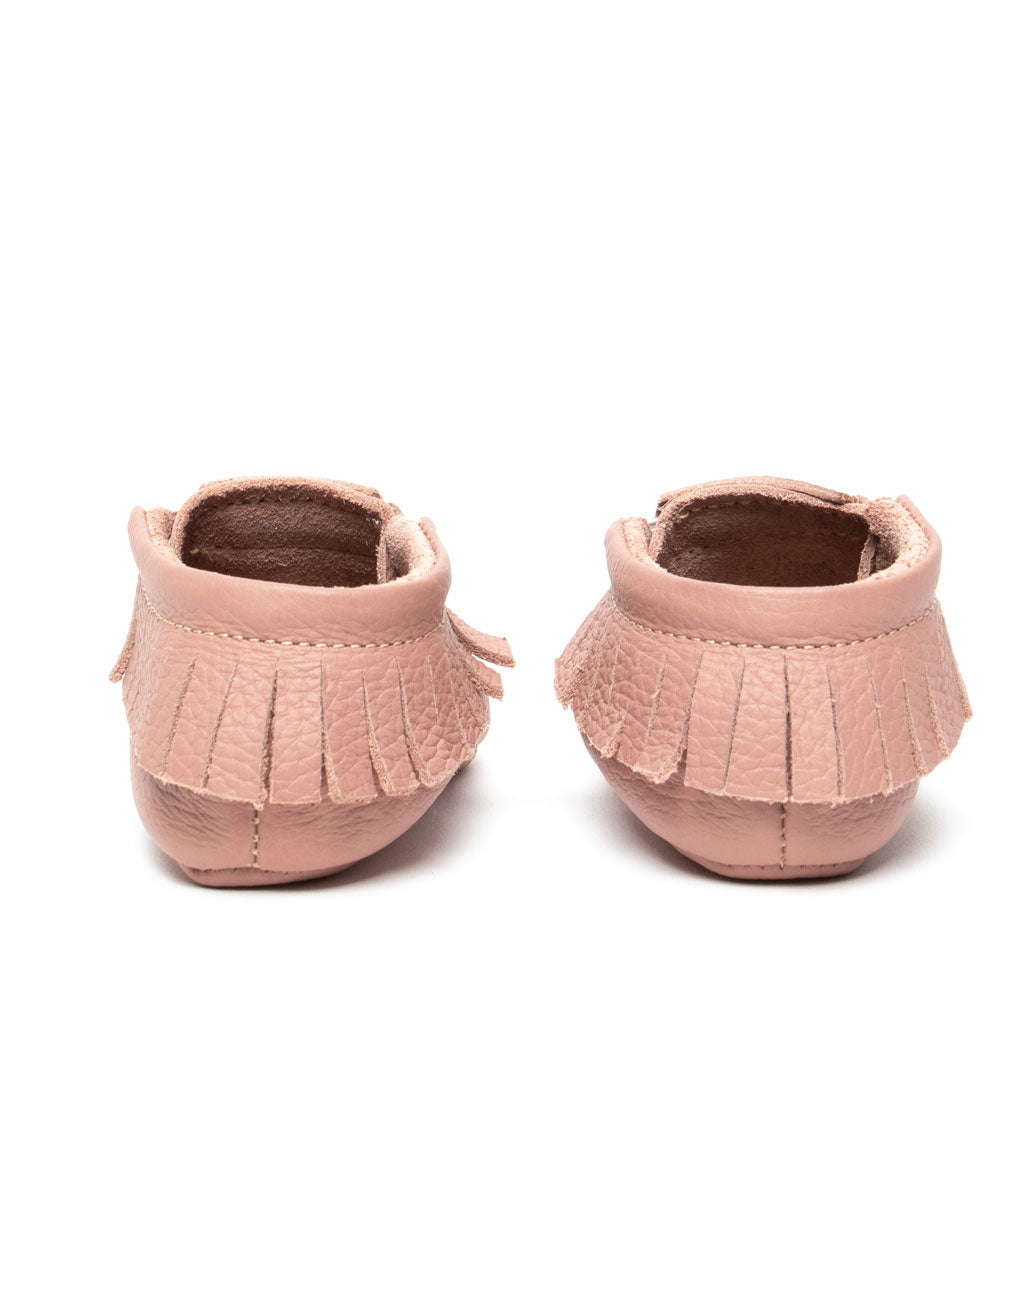 Dusty Rose Baby Moccasins | The Little Market